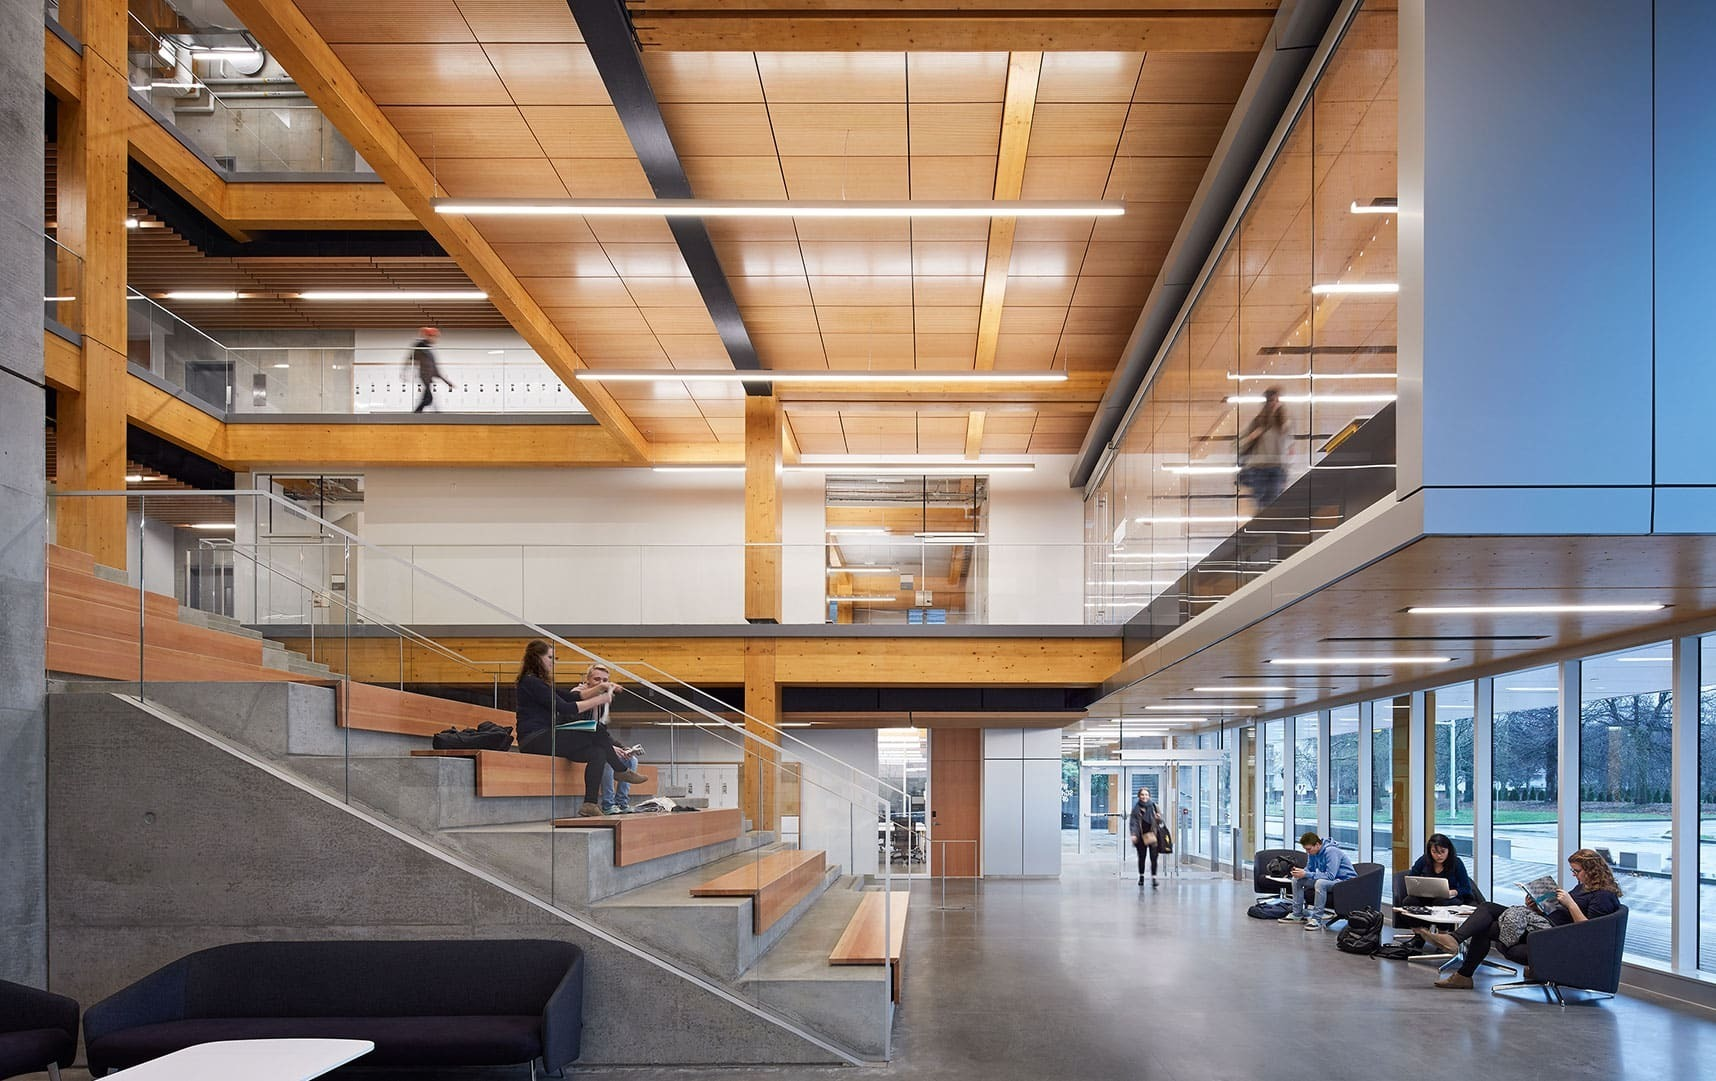 The student common area has lots of seating and natural light for the students to get together and study.